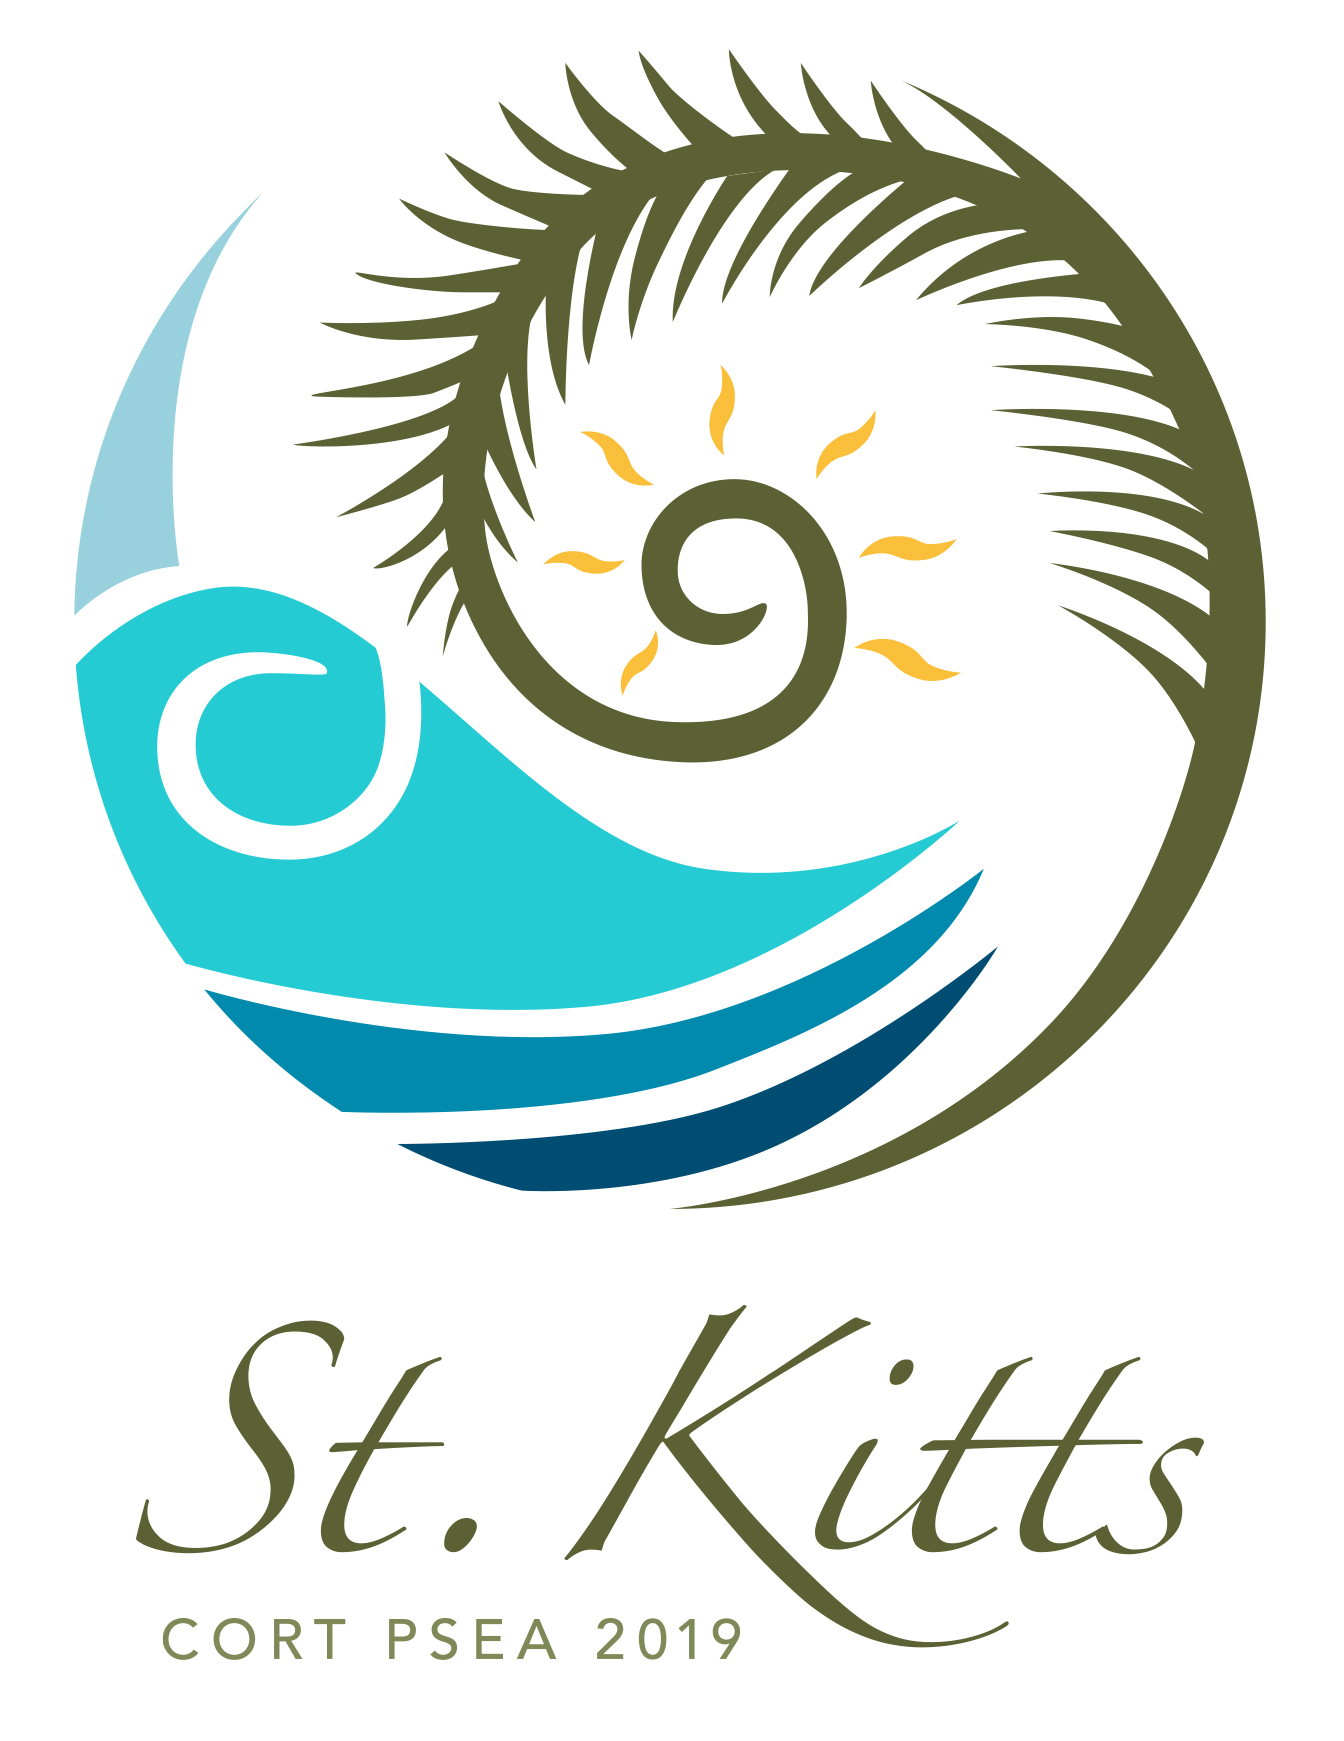 CORT PSEA 2019 St. Kitts